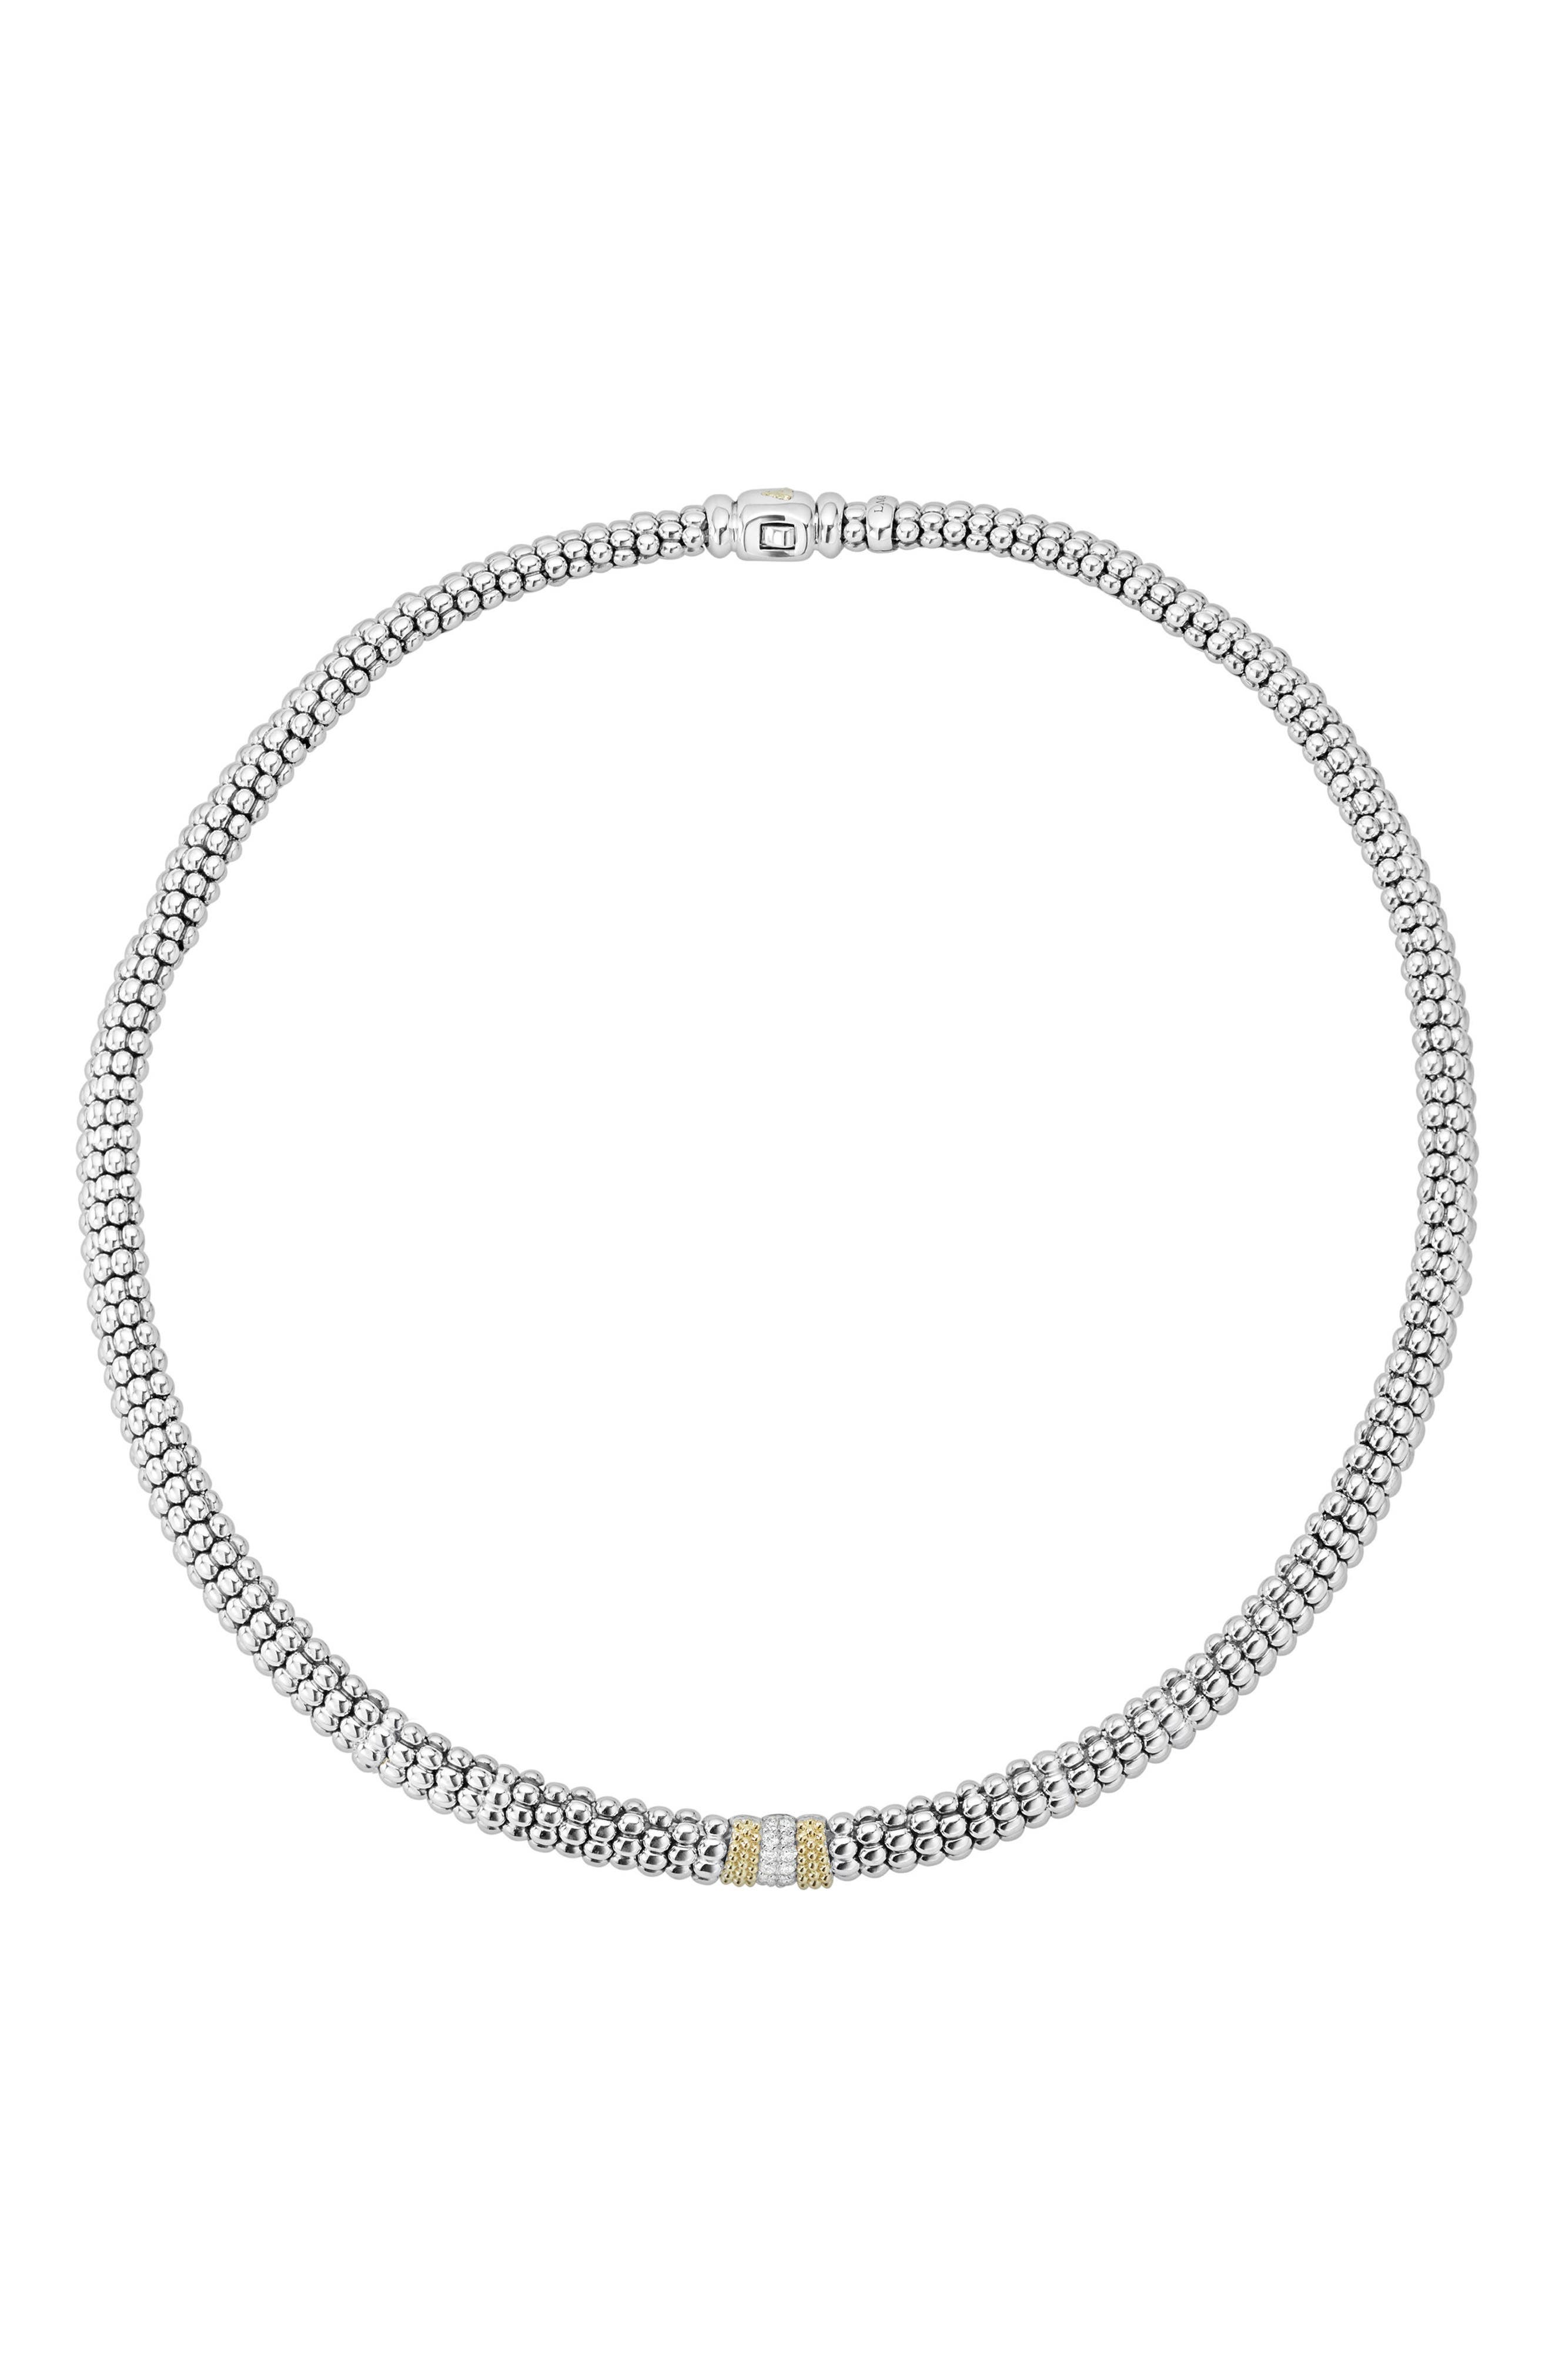 Diamond Lux Station Collar Necklace,                             Main thumbnail 1, color,                             Silver/ Diamond